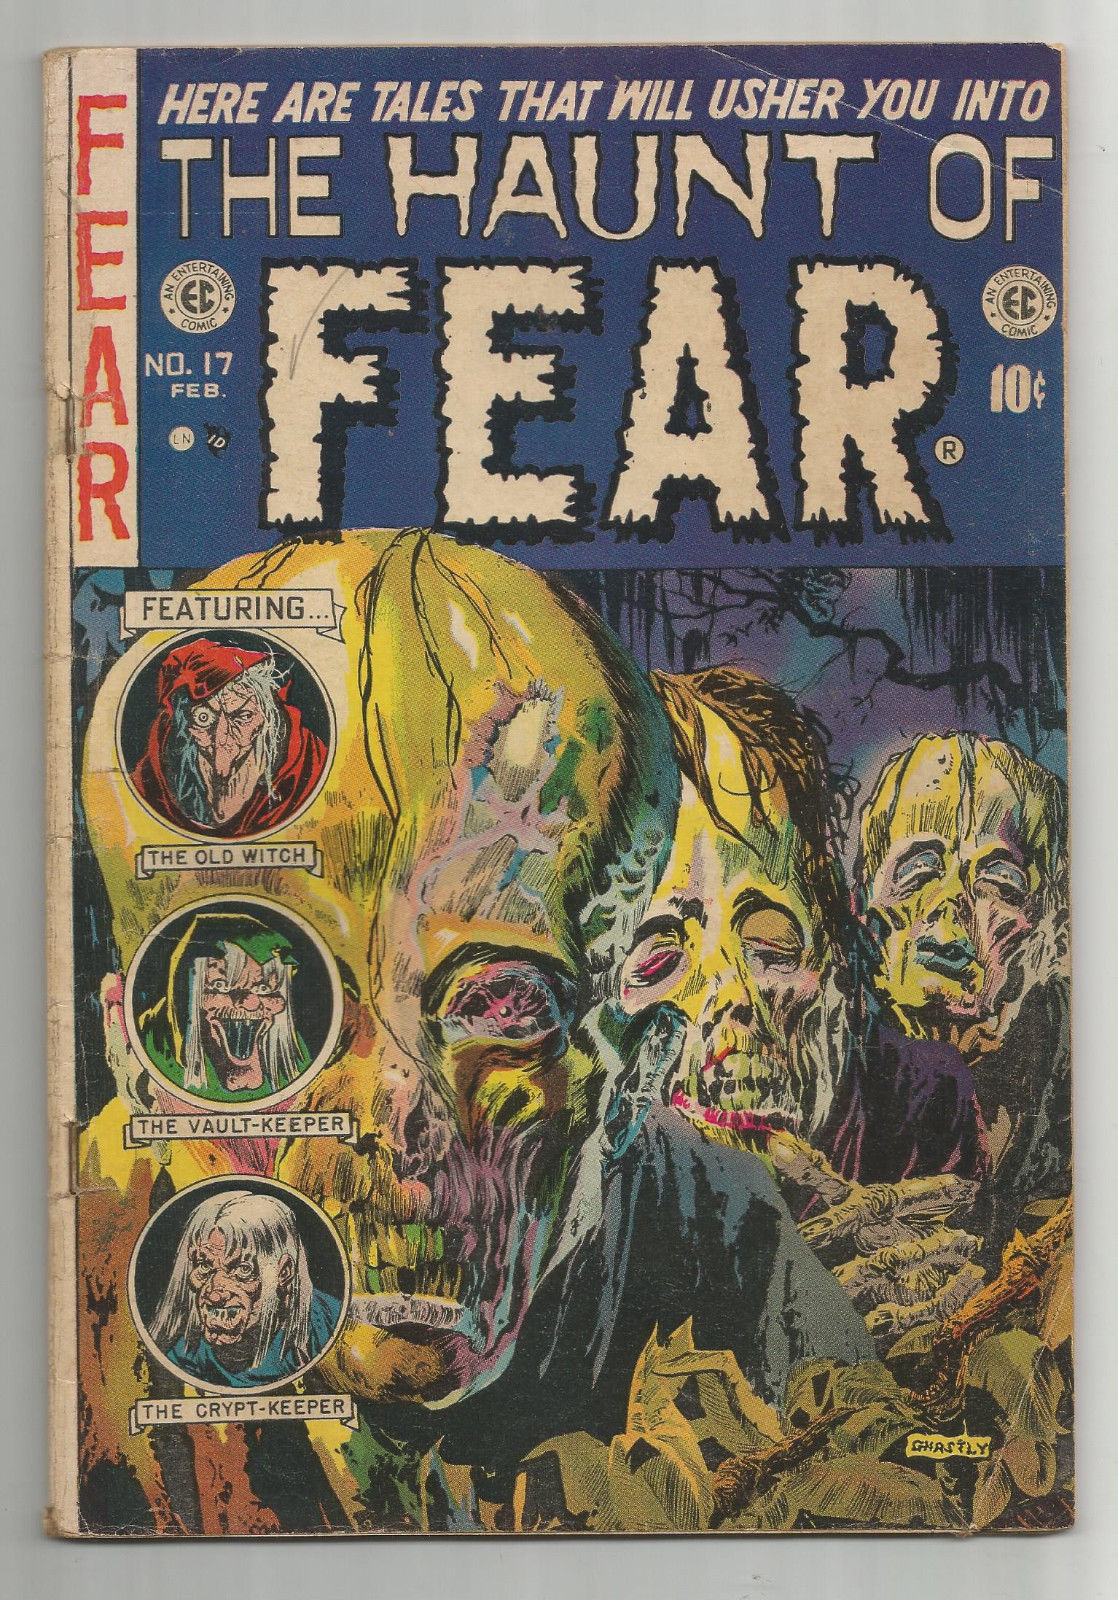 THE-HAUNT-OF-FEAR-17-Ghastly-Graham-Ingels-Cover